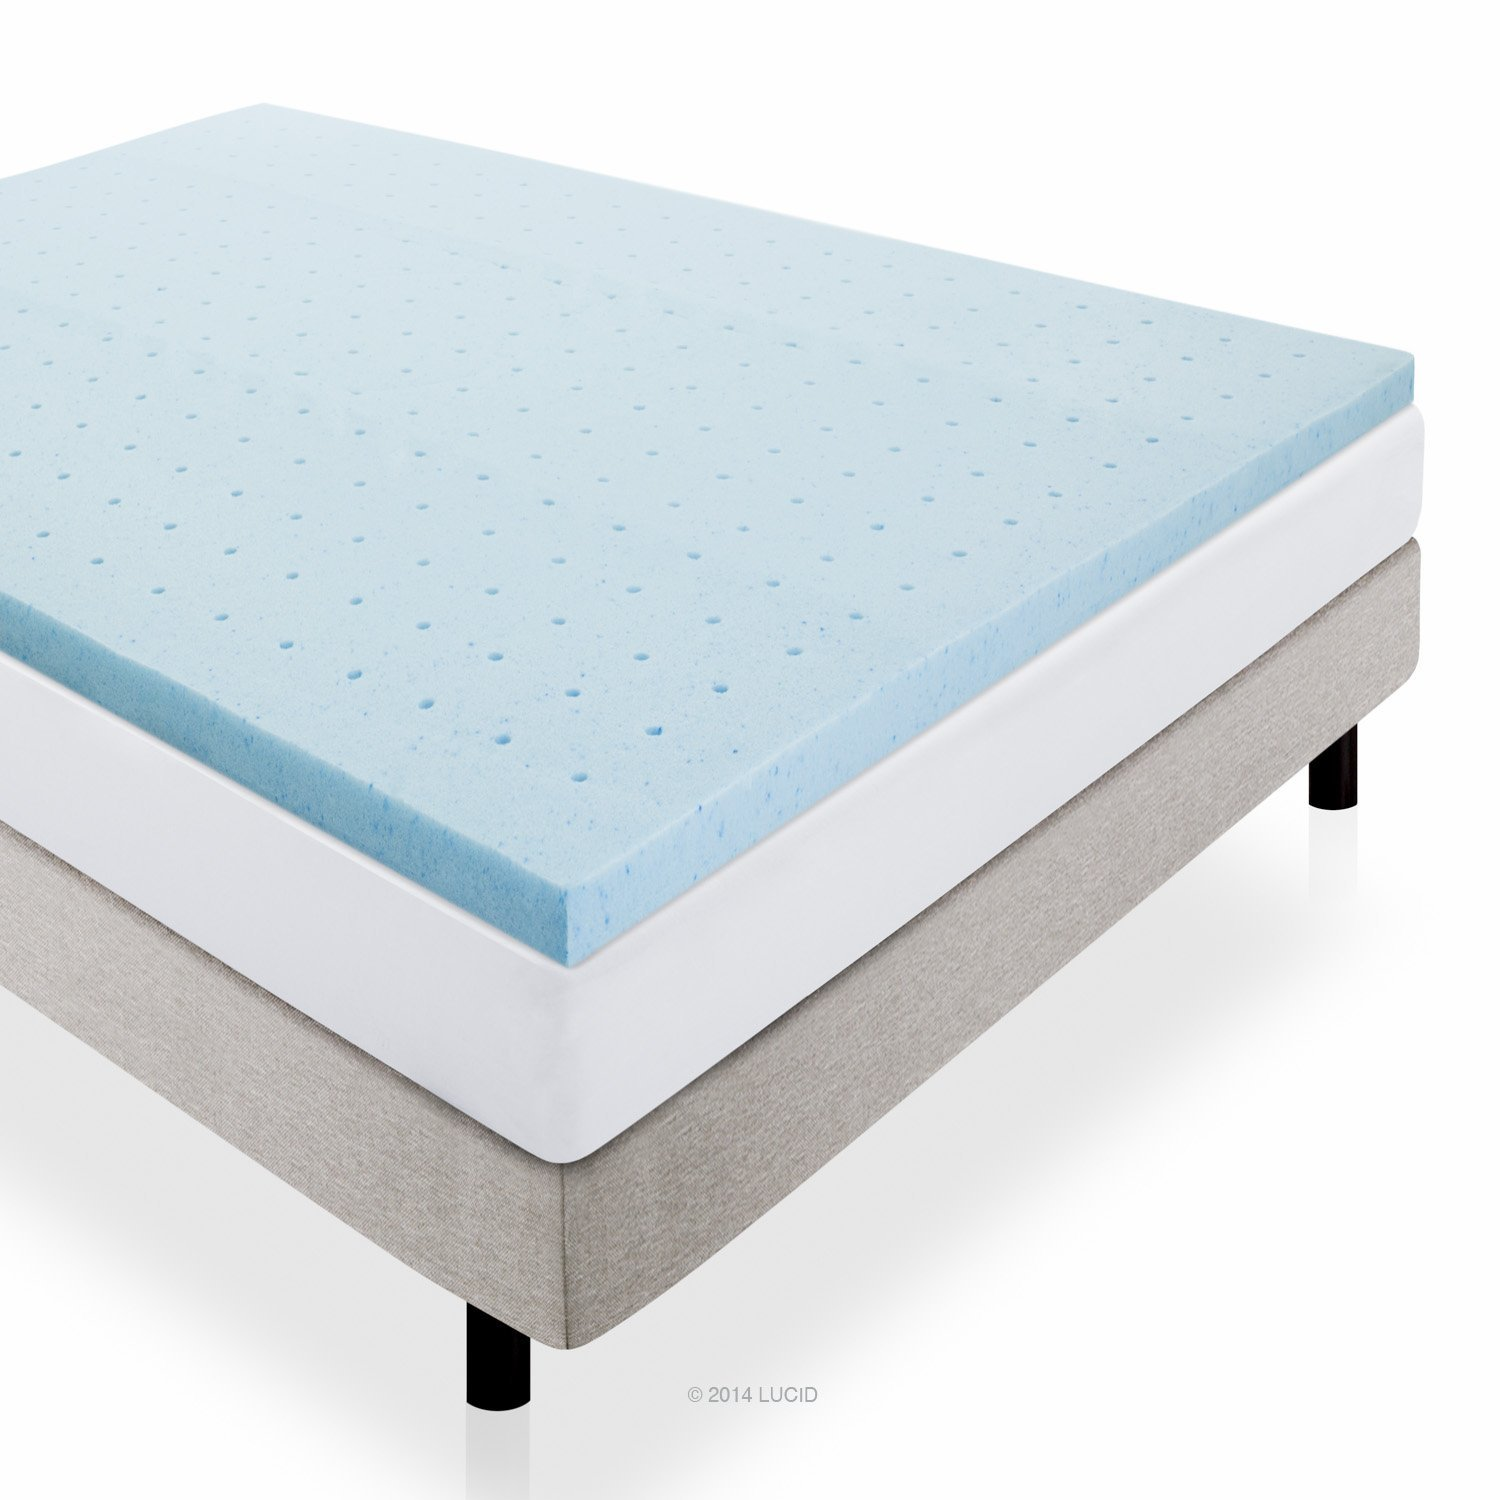 Lucid 2 Inch Gel Infused Ventilated Memory Foam Mattress